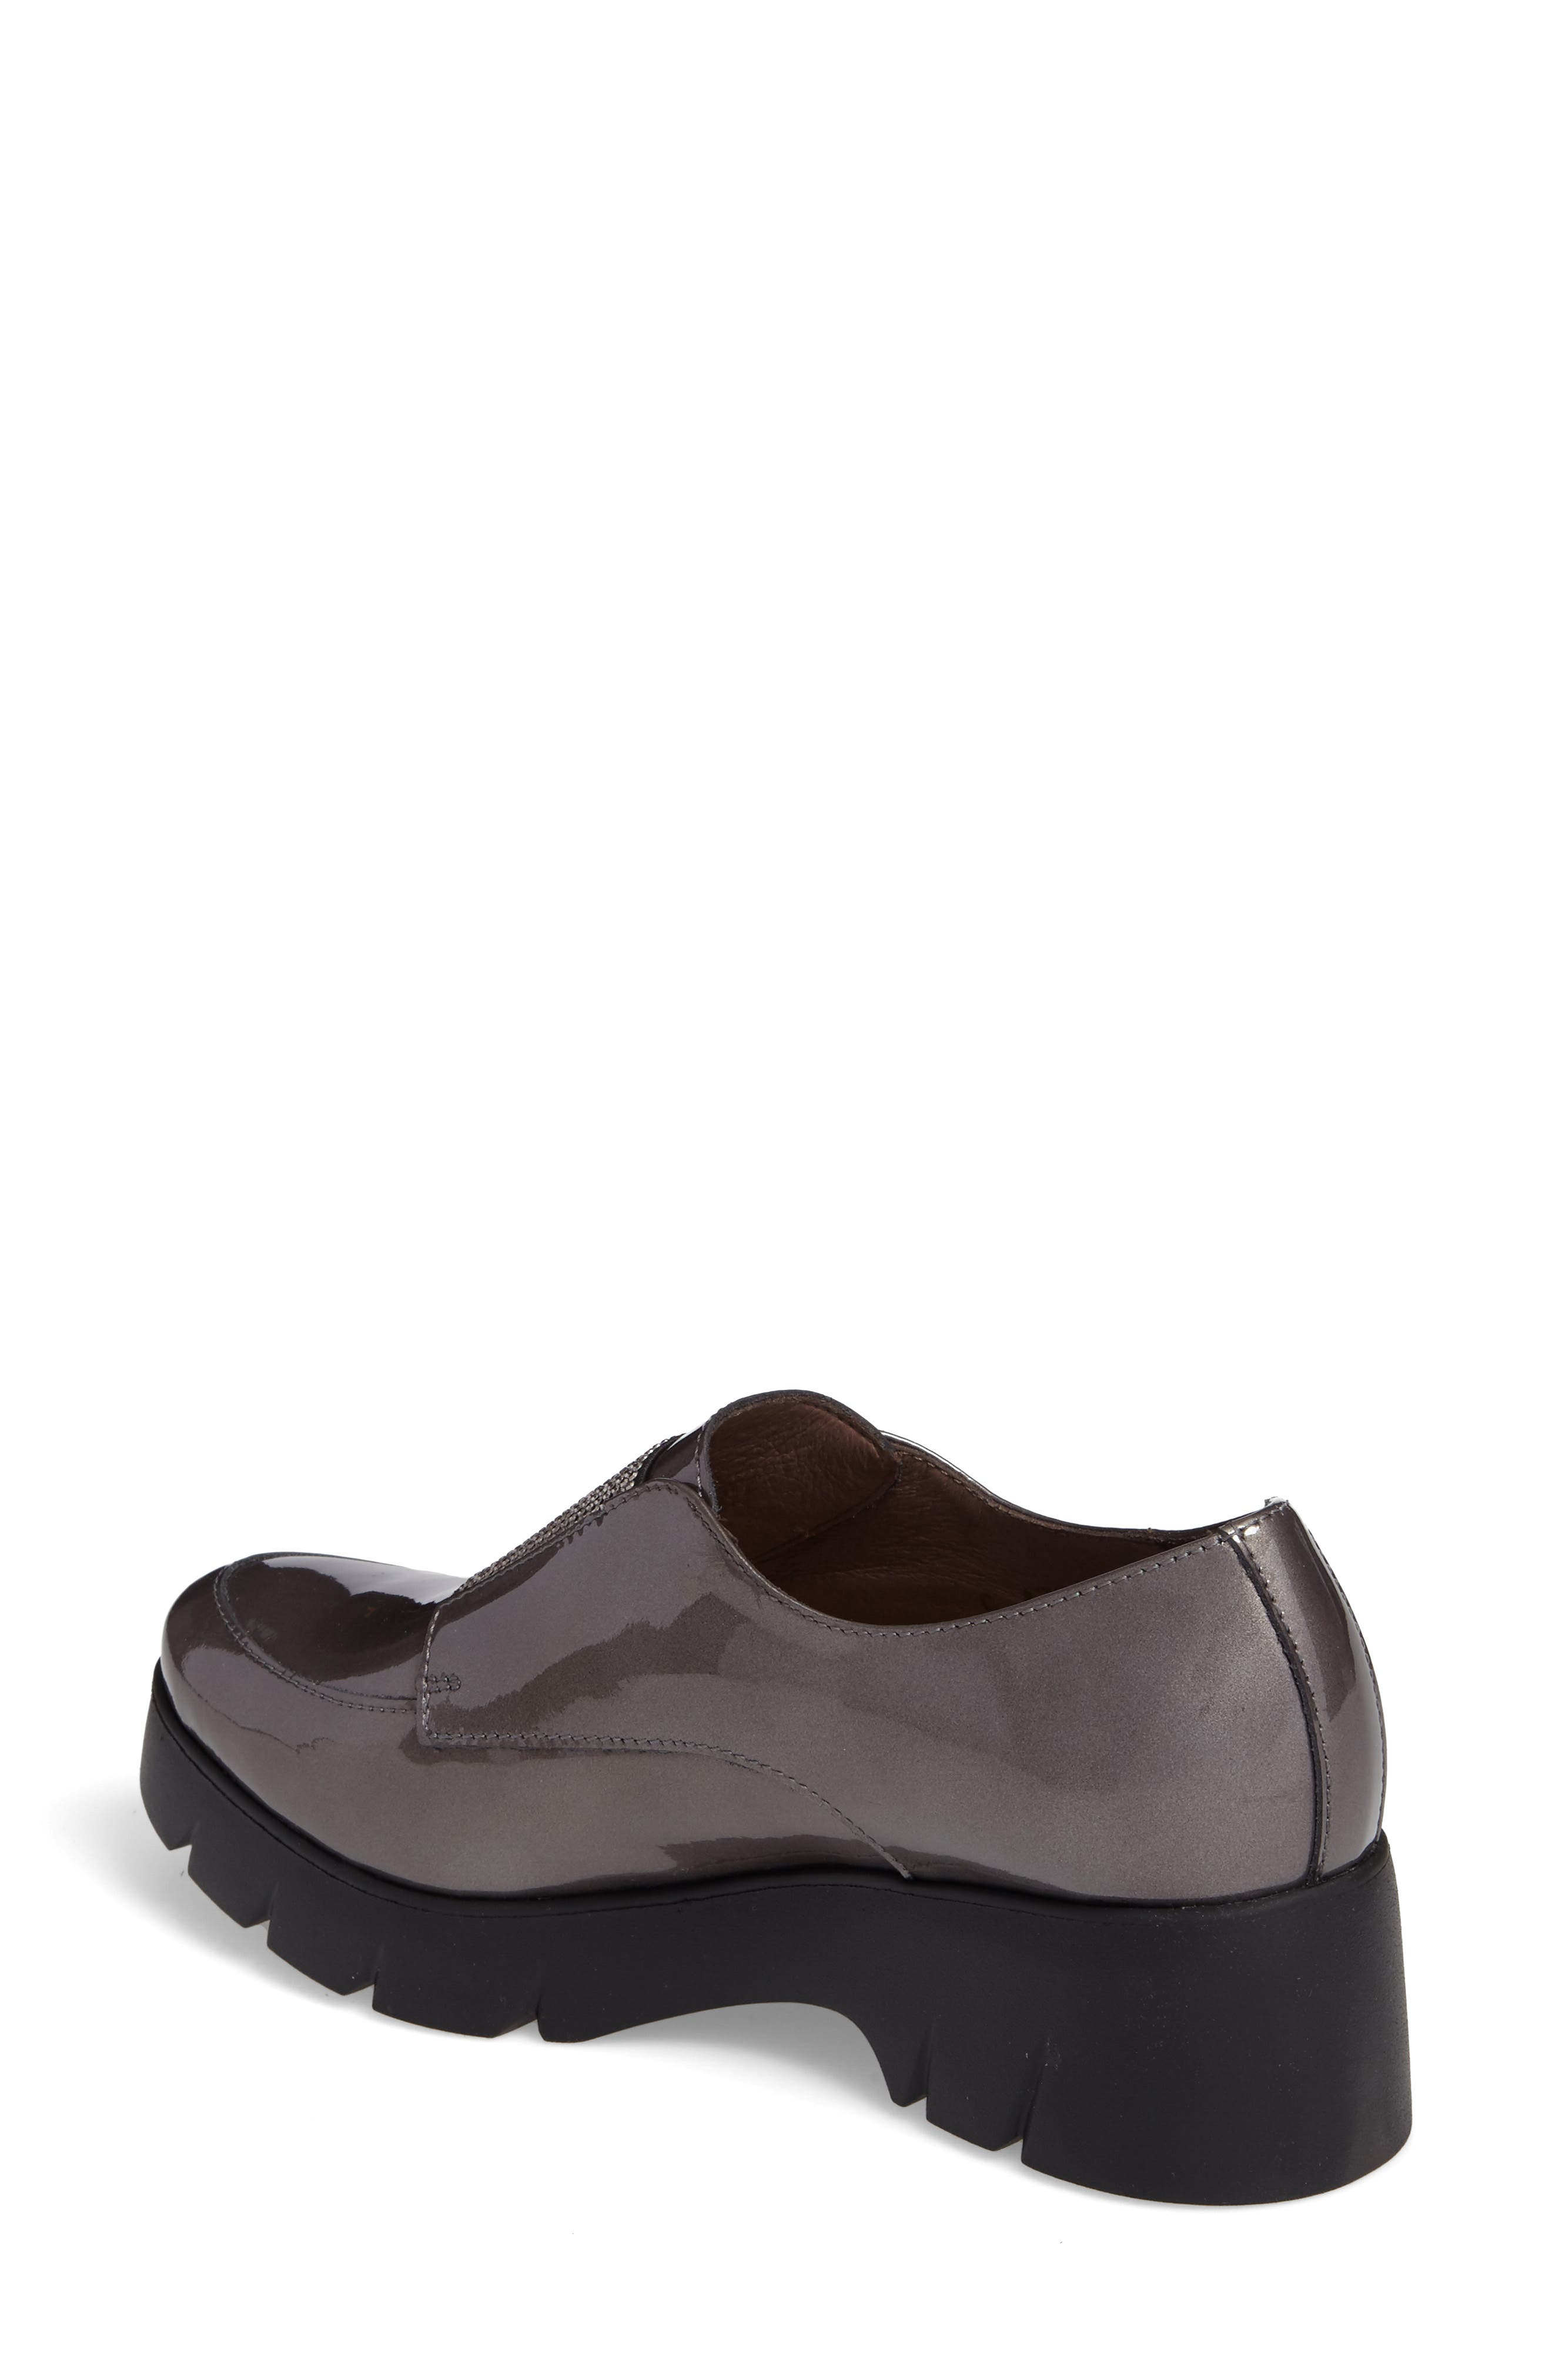 Loafer Flat,                             Alternate thumbnail 2, color,                             Silver Patent Leather